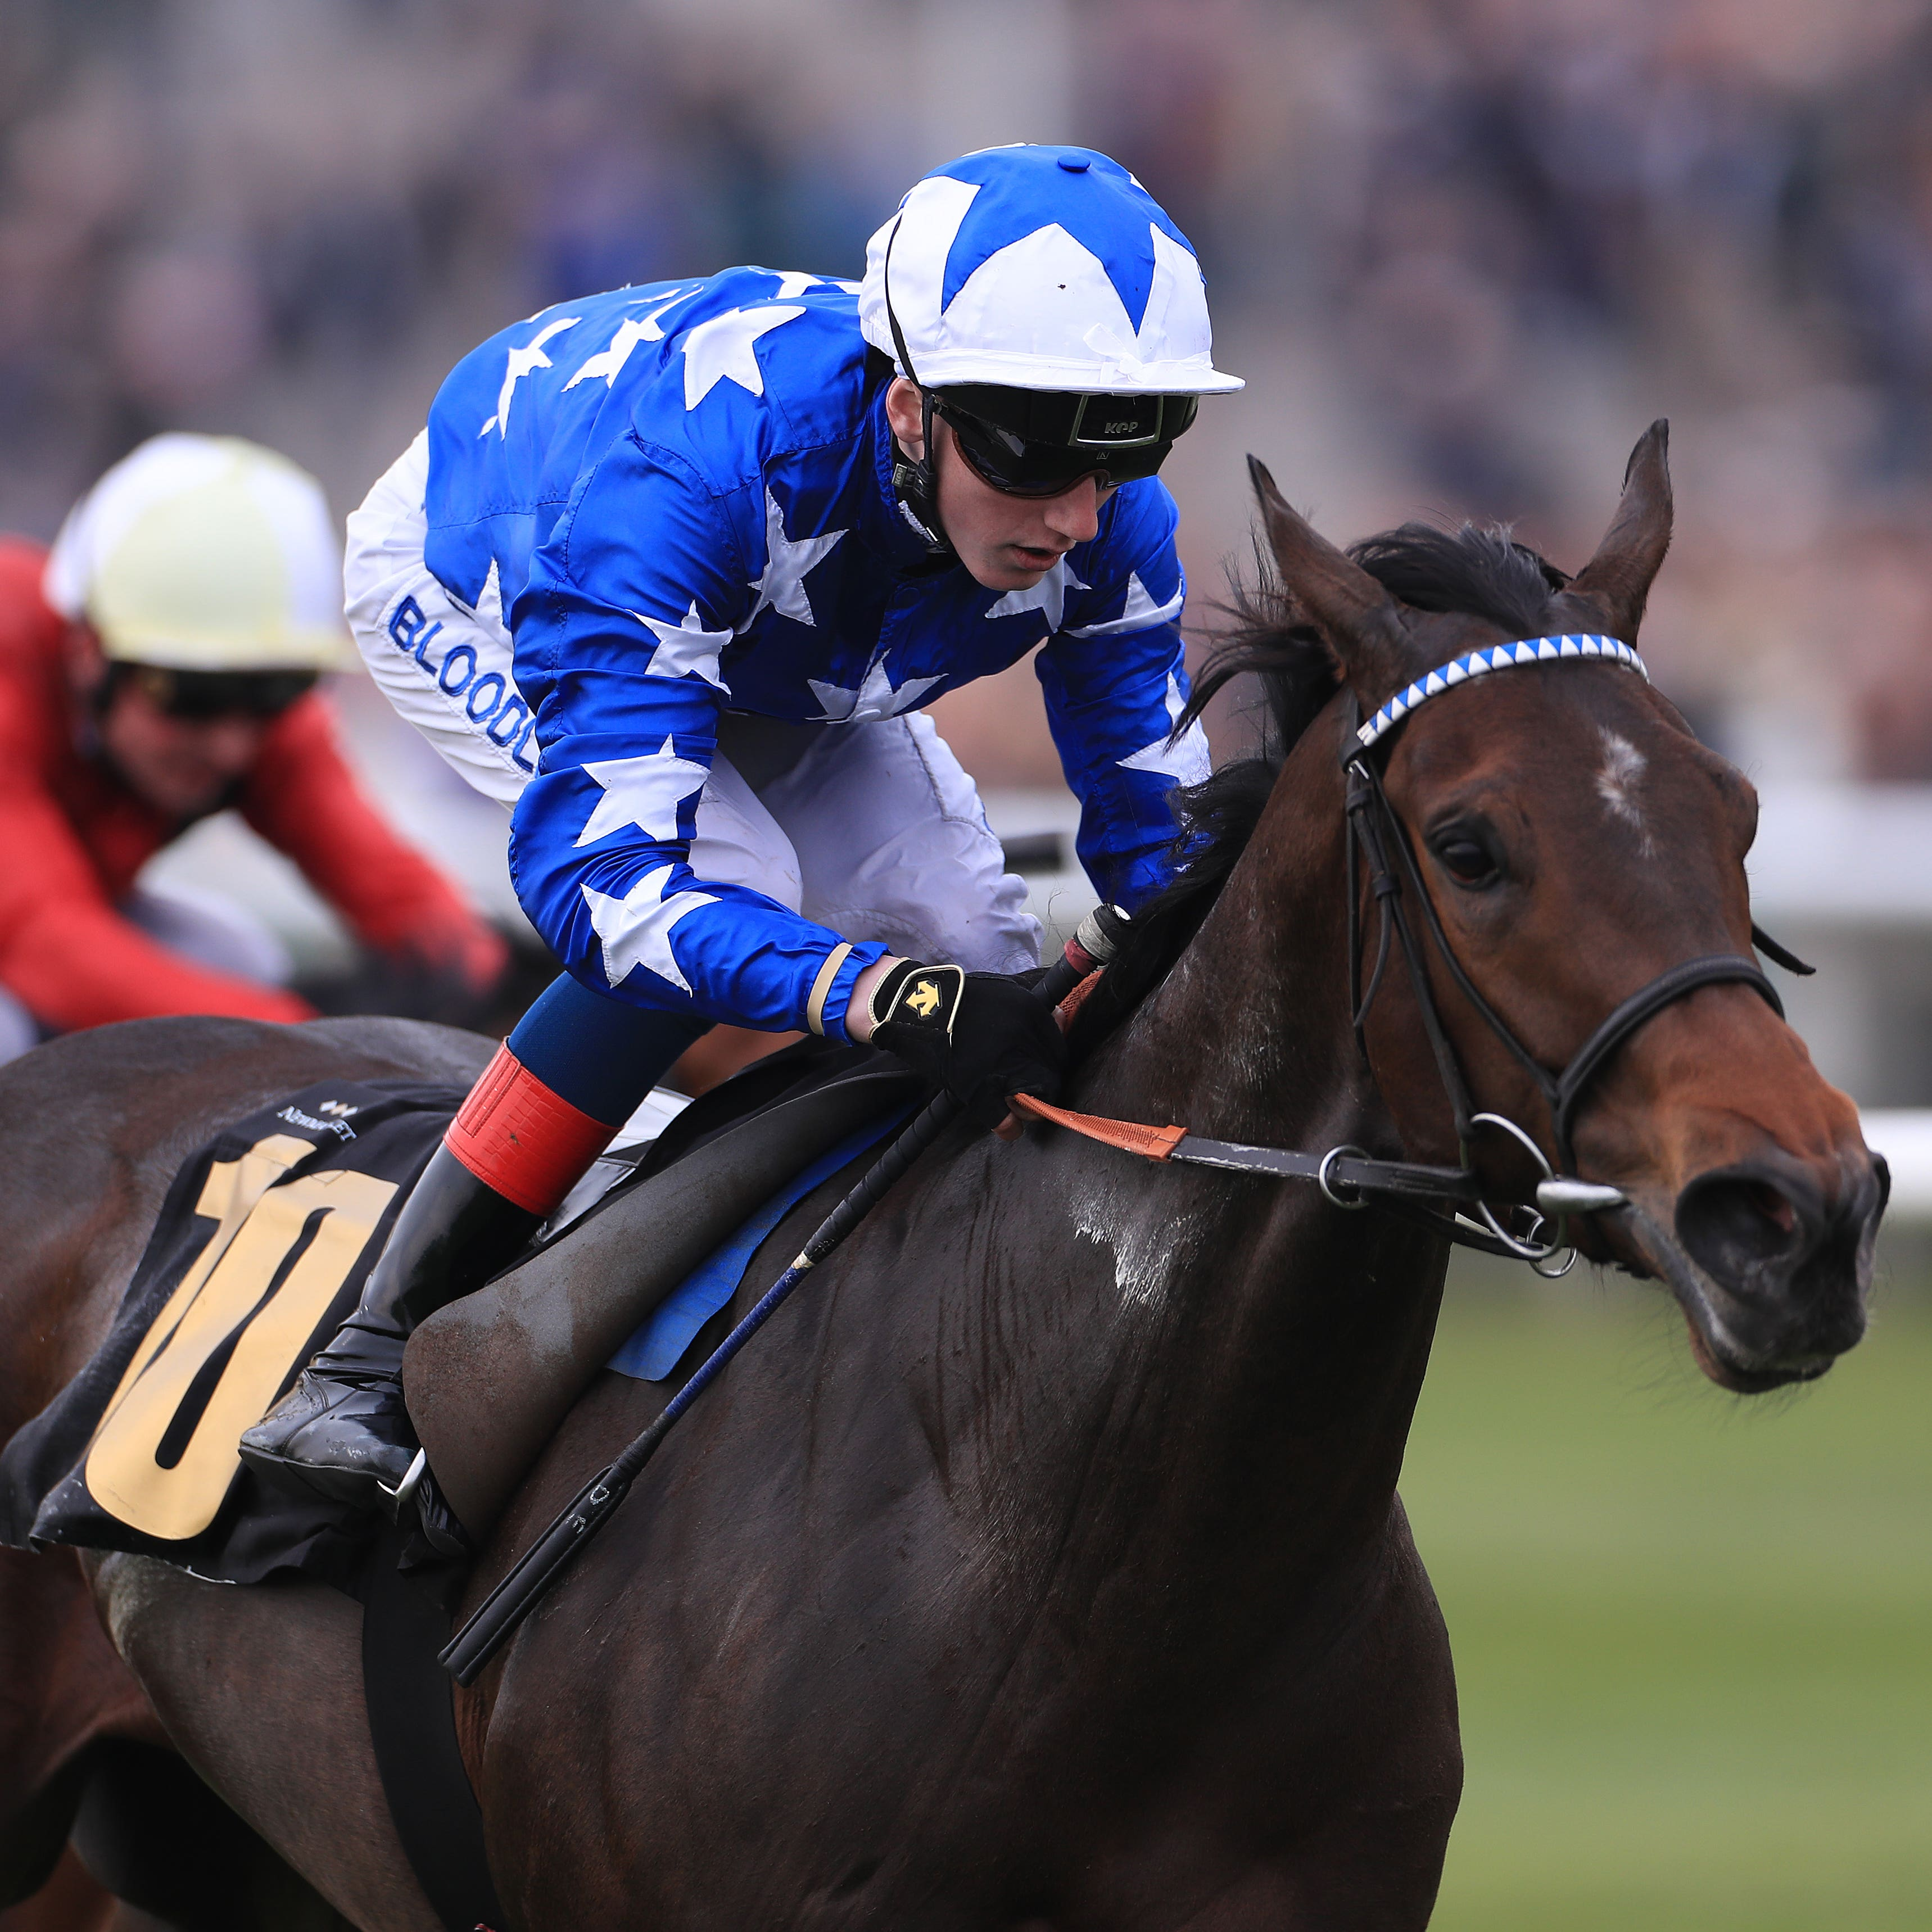 Qabala was an impressive winner of the Nell Gwyn Stakes at Newmarket